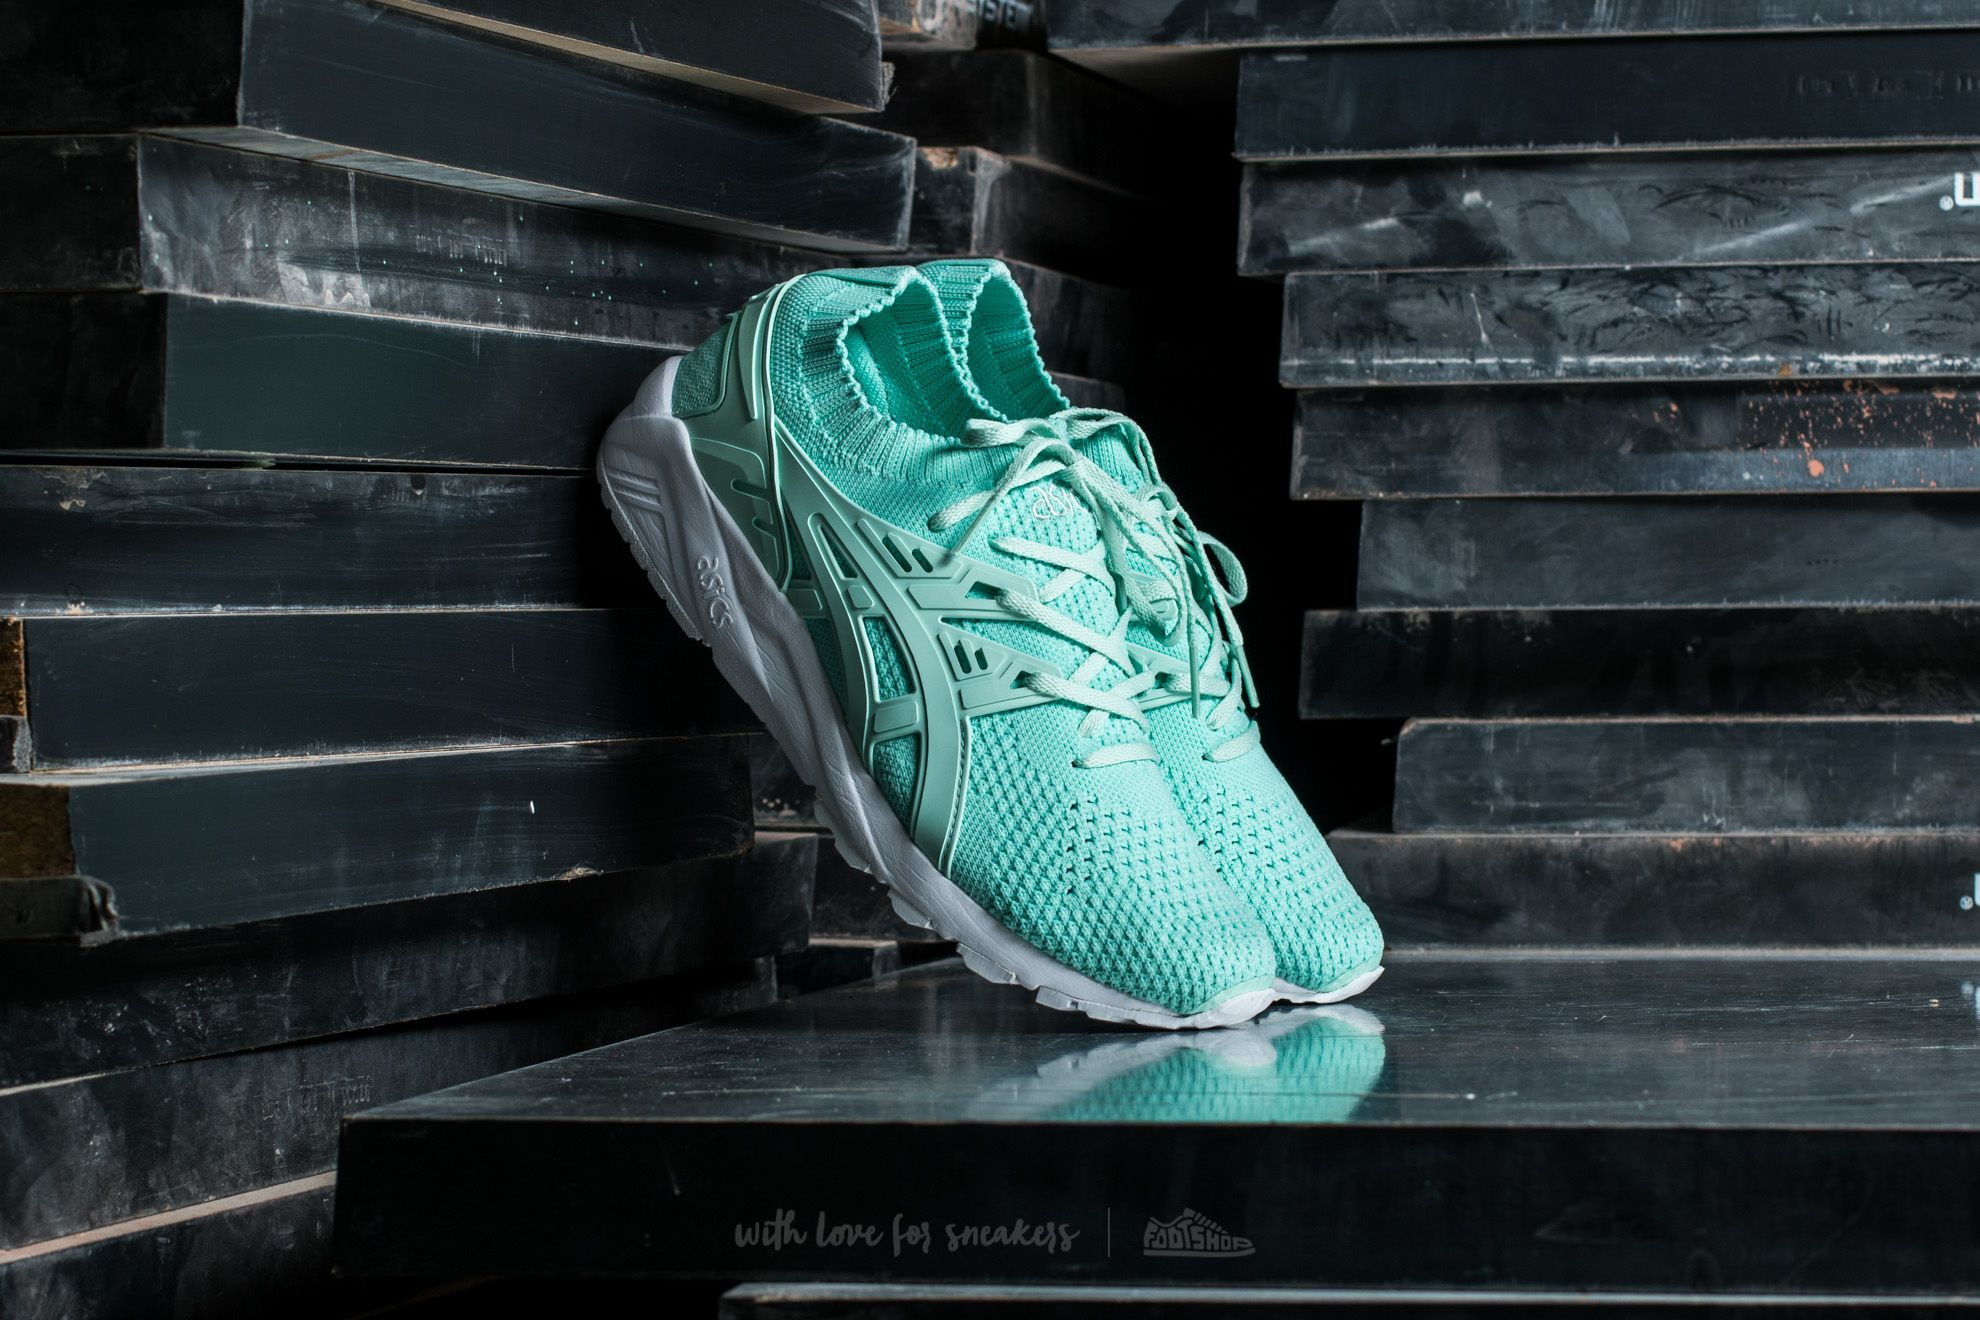 d5ac468443f53 Asics Gel-Kayano Trainer Knit Bay/ Bay | Footshop